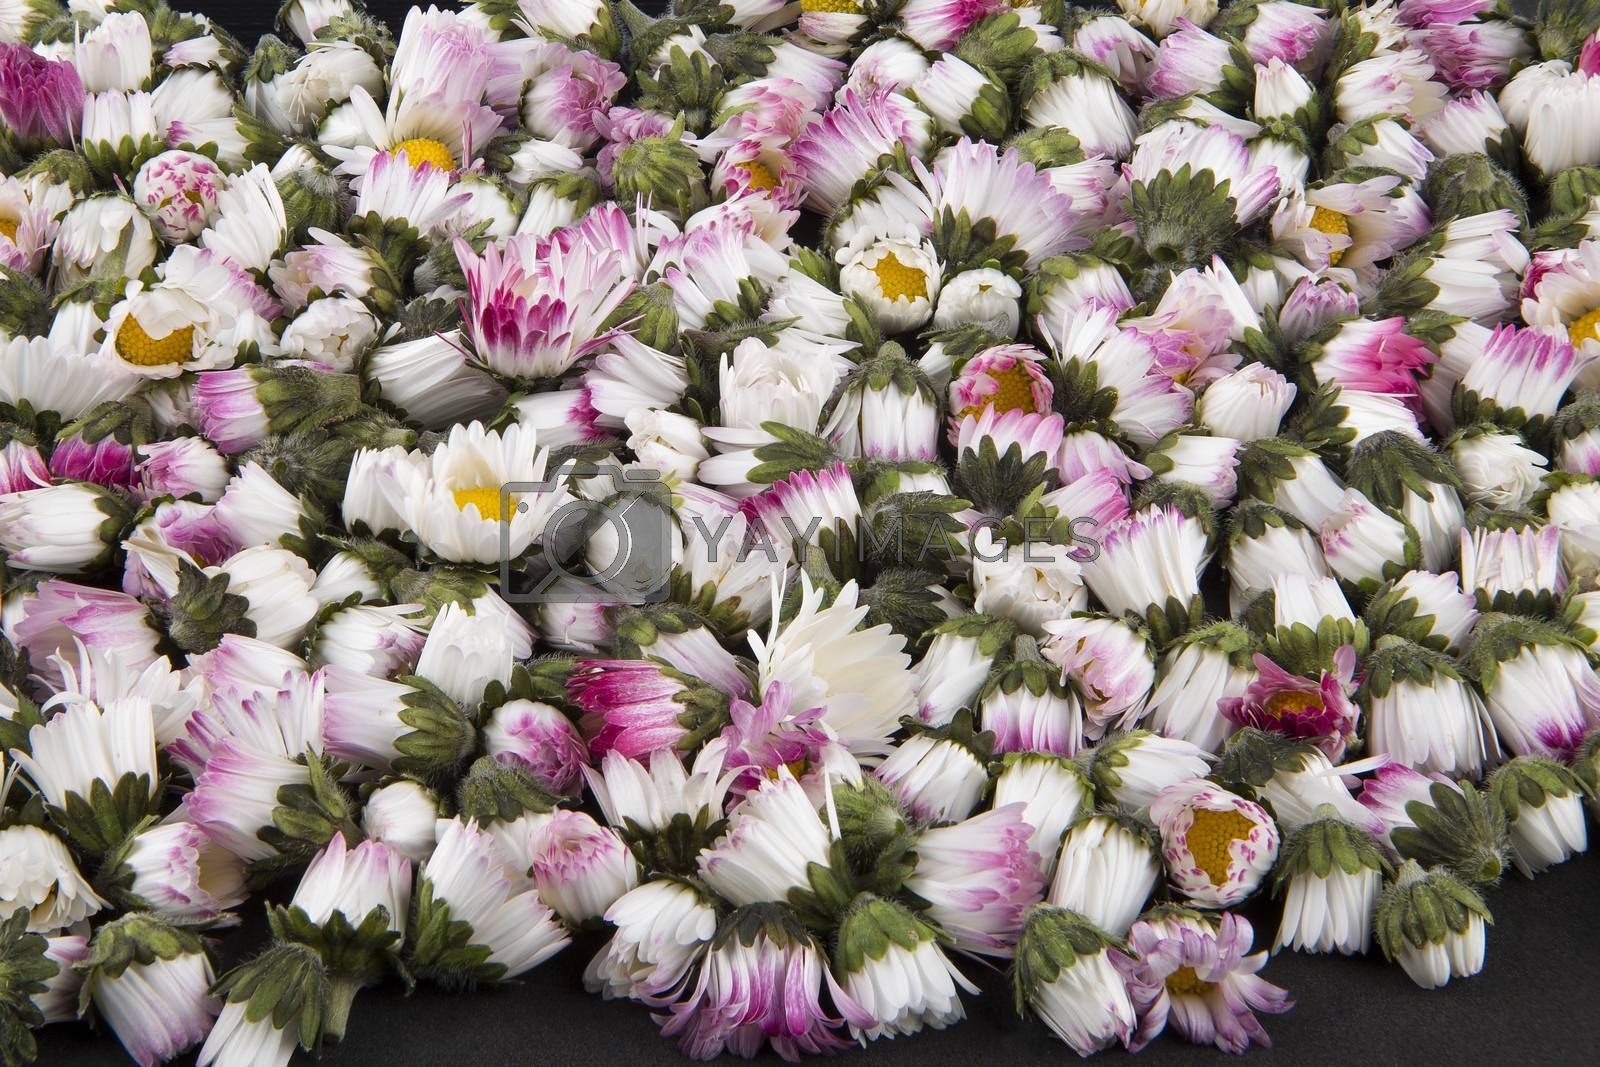 Royalty free image of Background: sleeping closed daisies - bellis perennis by paocasa